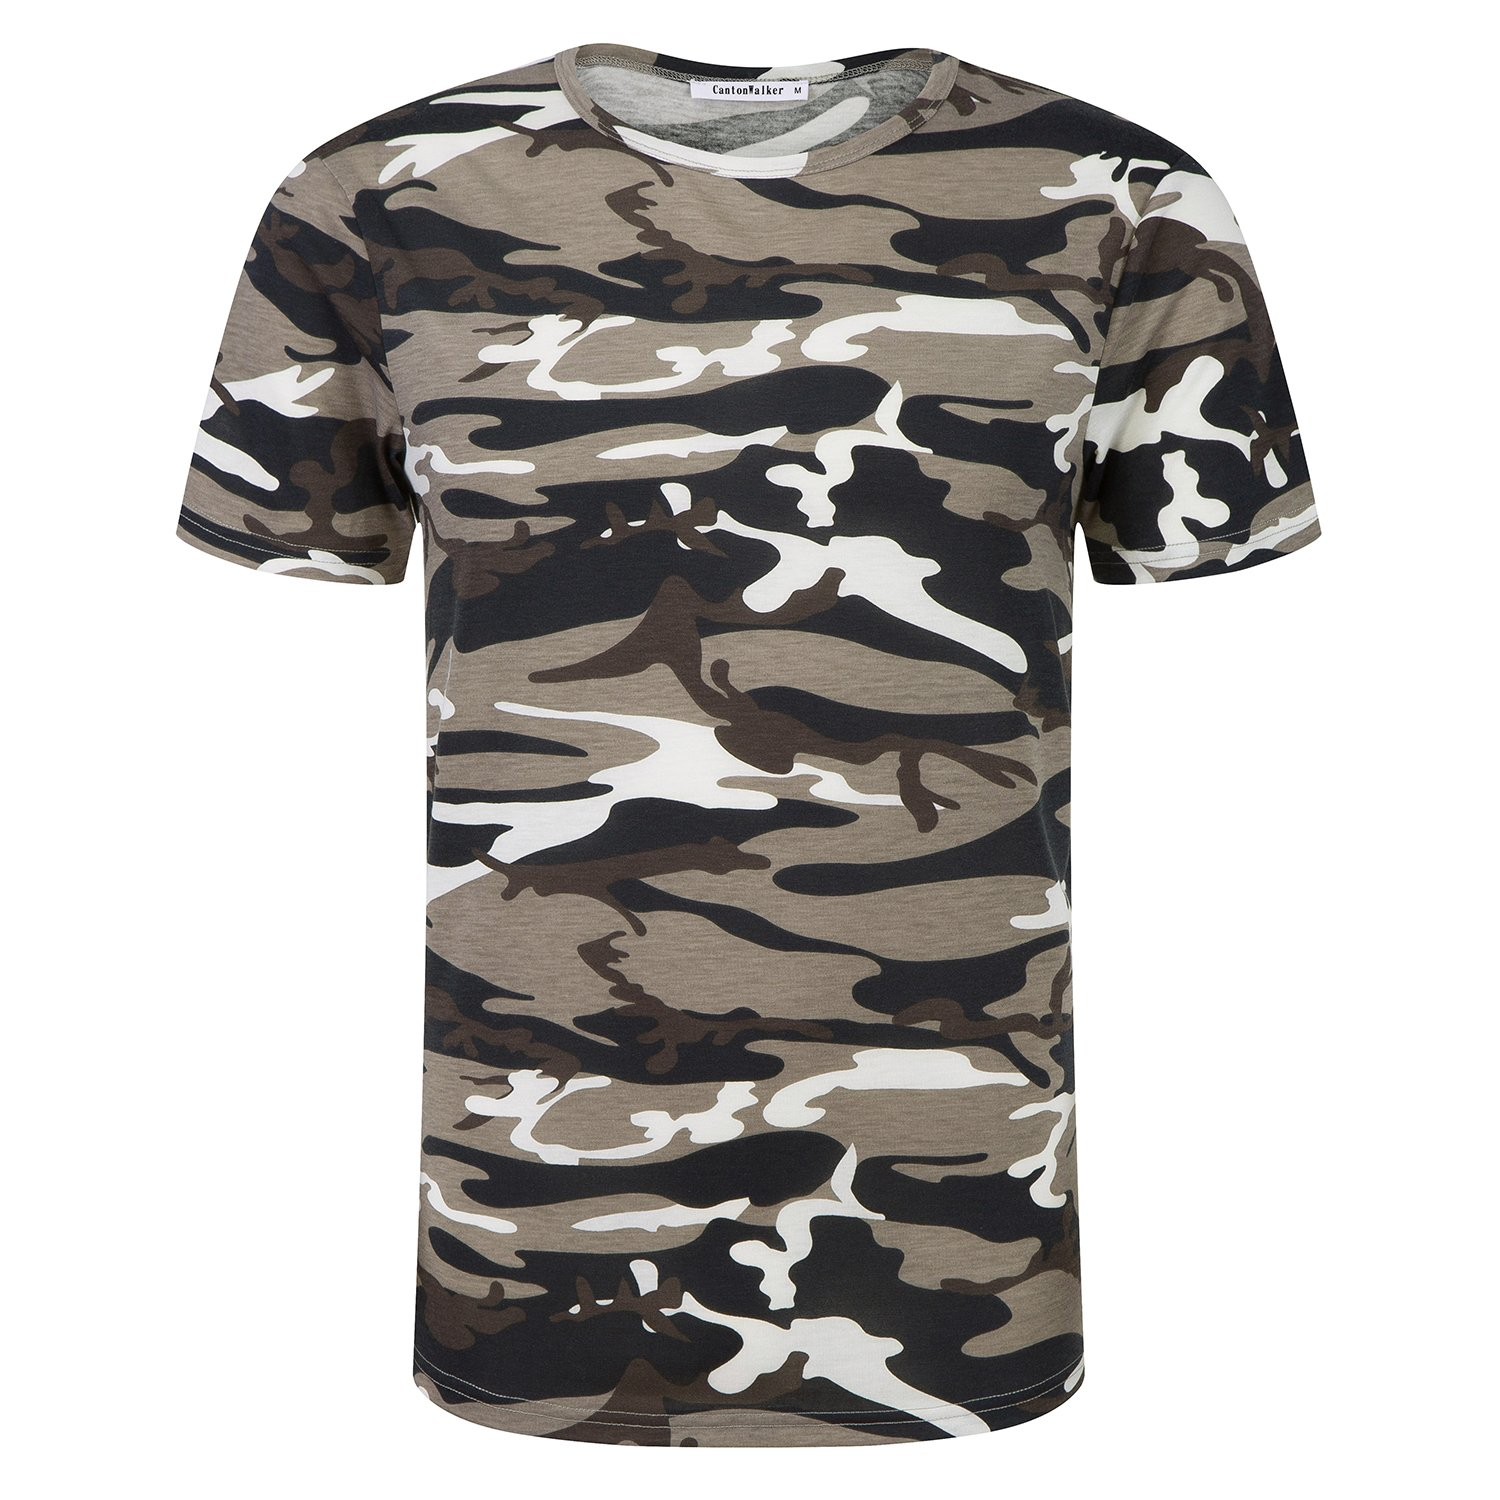 706372201 CAMO DESIGN: camouflage uniforms T-shirt, short-sleeved, round neck design,  to show men's military personality and firm character.